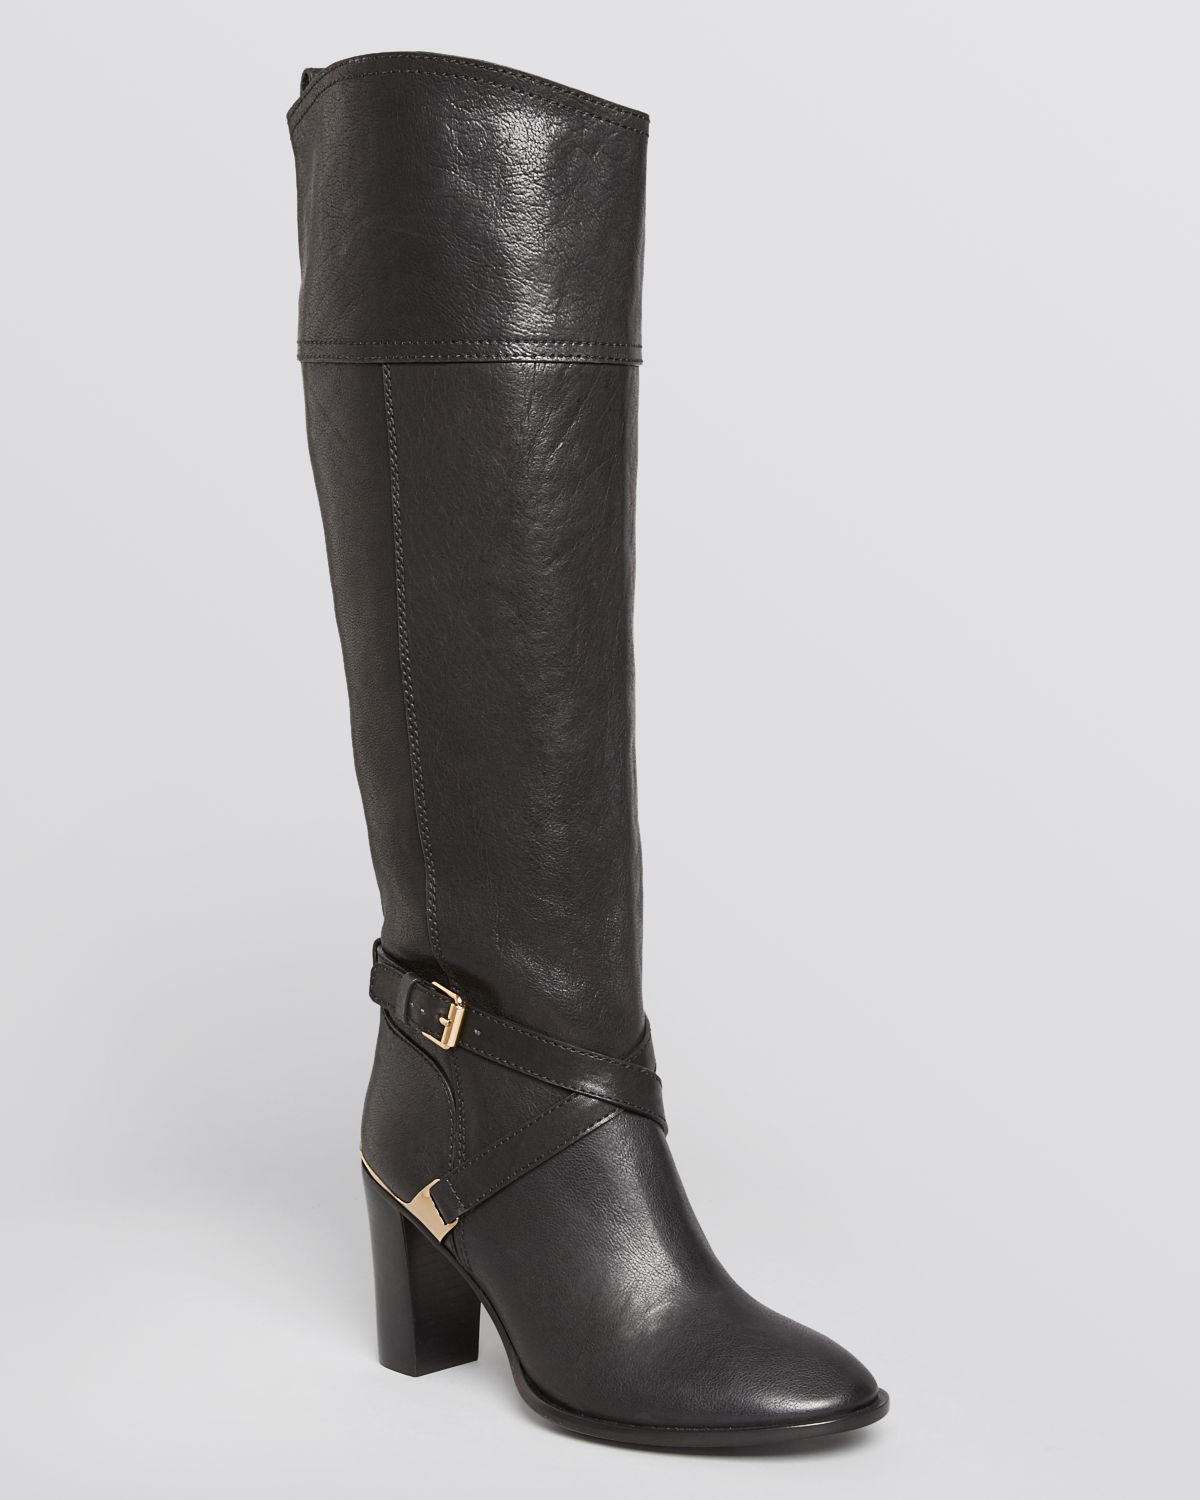 Tory burch Riding Boots Livingston High Heel in Black | Lyst